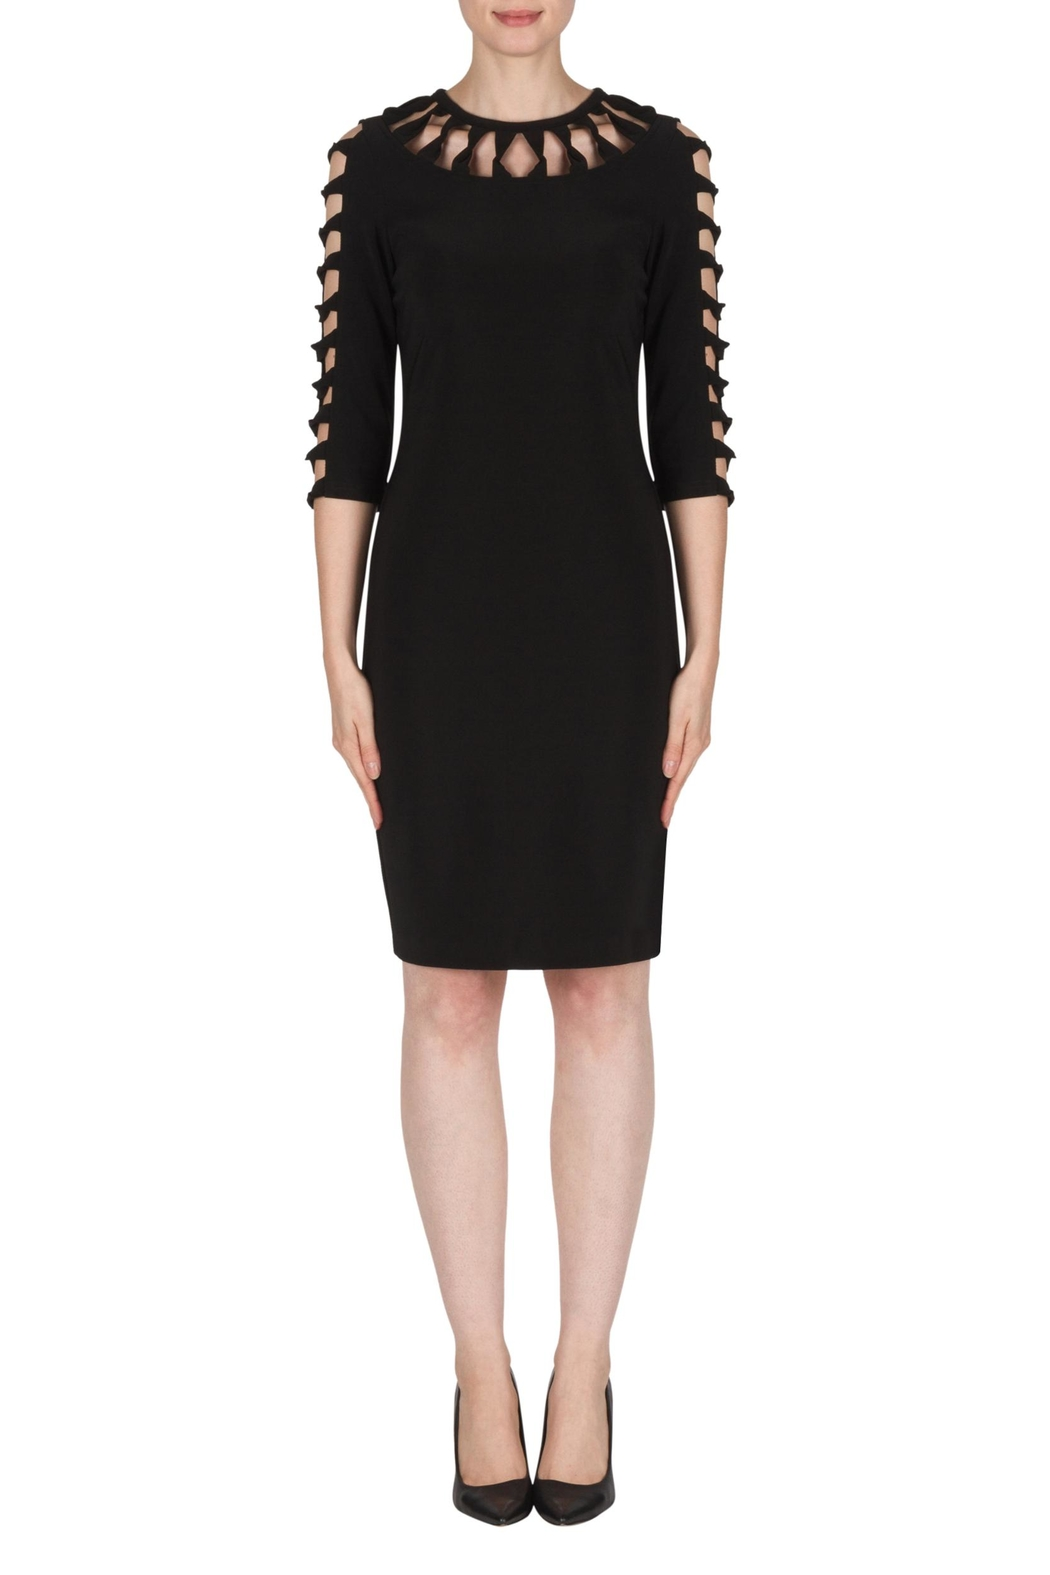 Joseph Ribkoff Black Cut-Outs Dress - Main Image